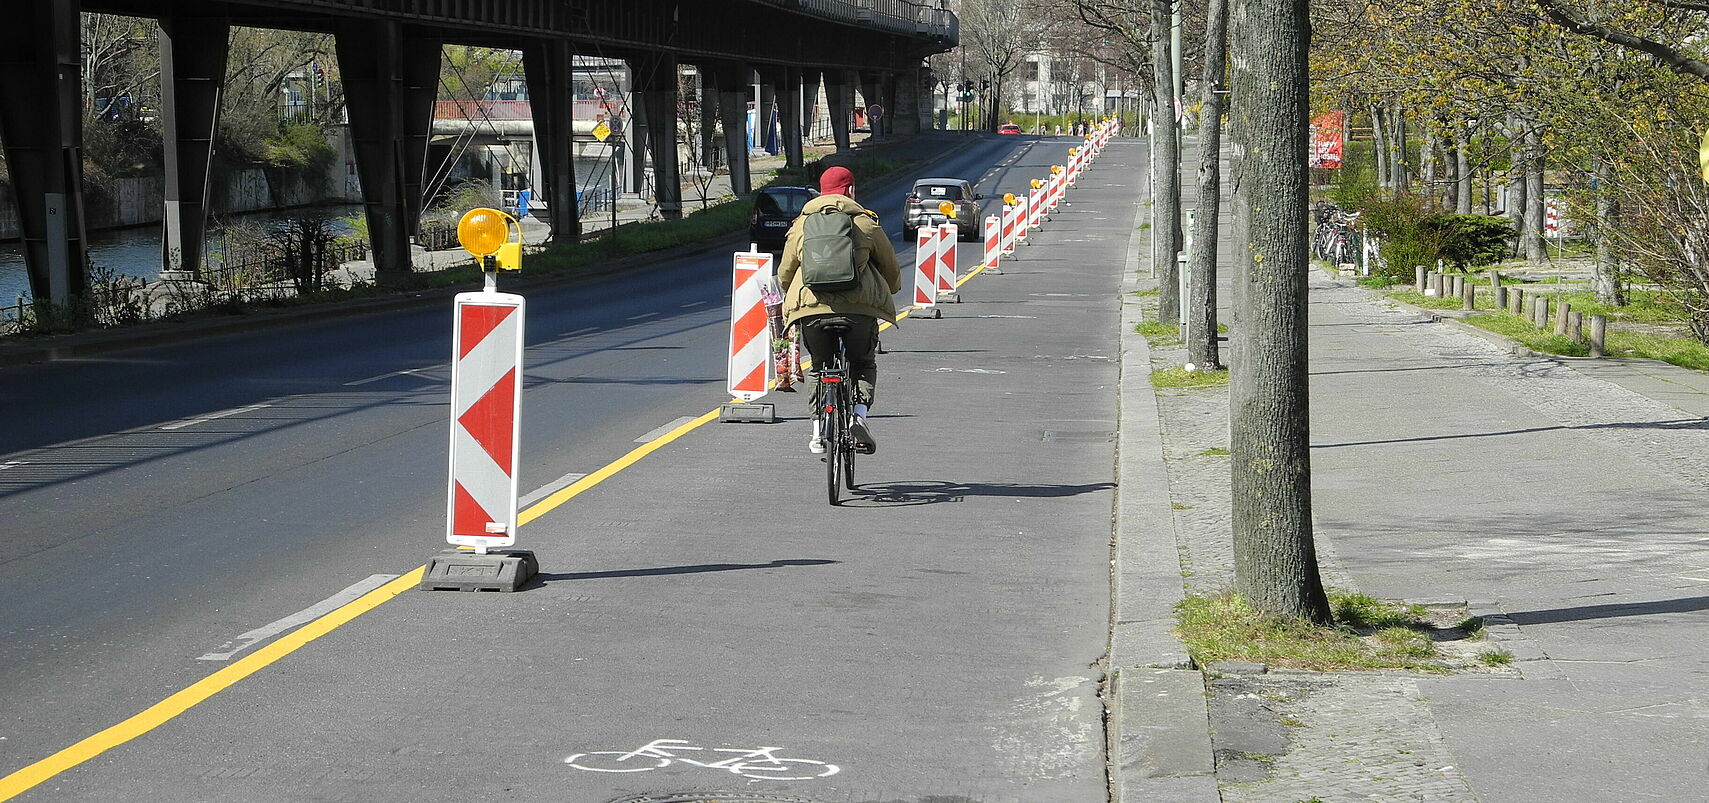 Pop-up Bikelane in Berlin